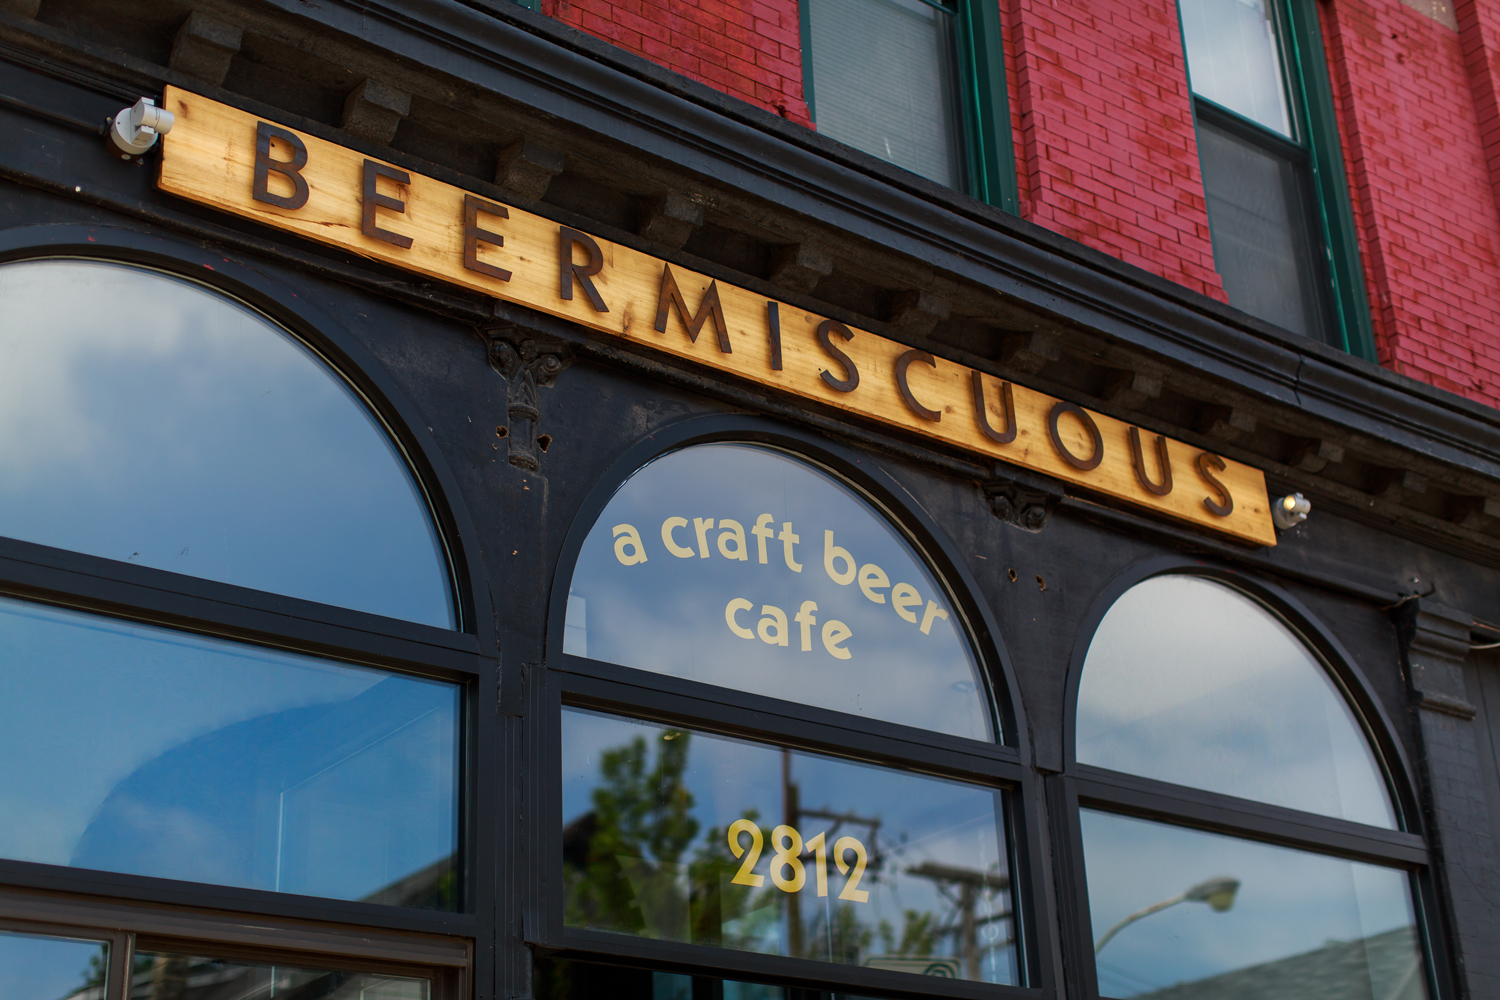 Full Venue event space at Beermiscuous (Do Not Use) in Chicago, Chicagoland Area